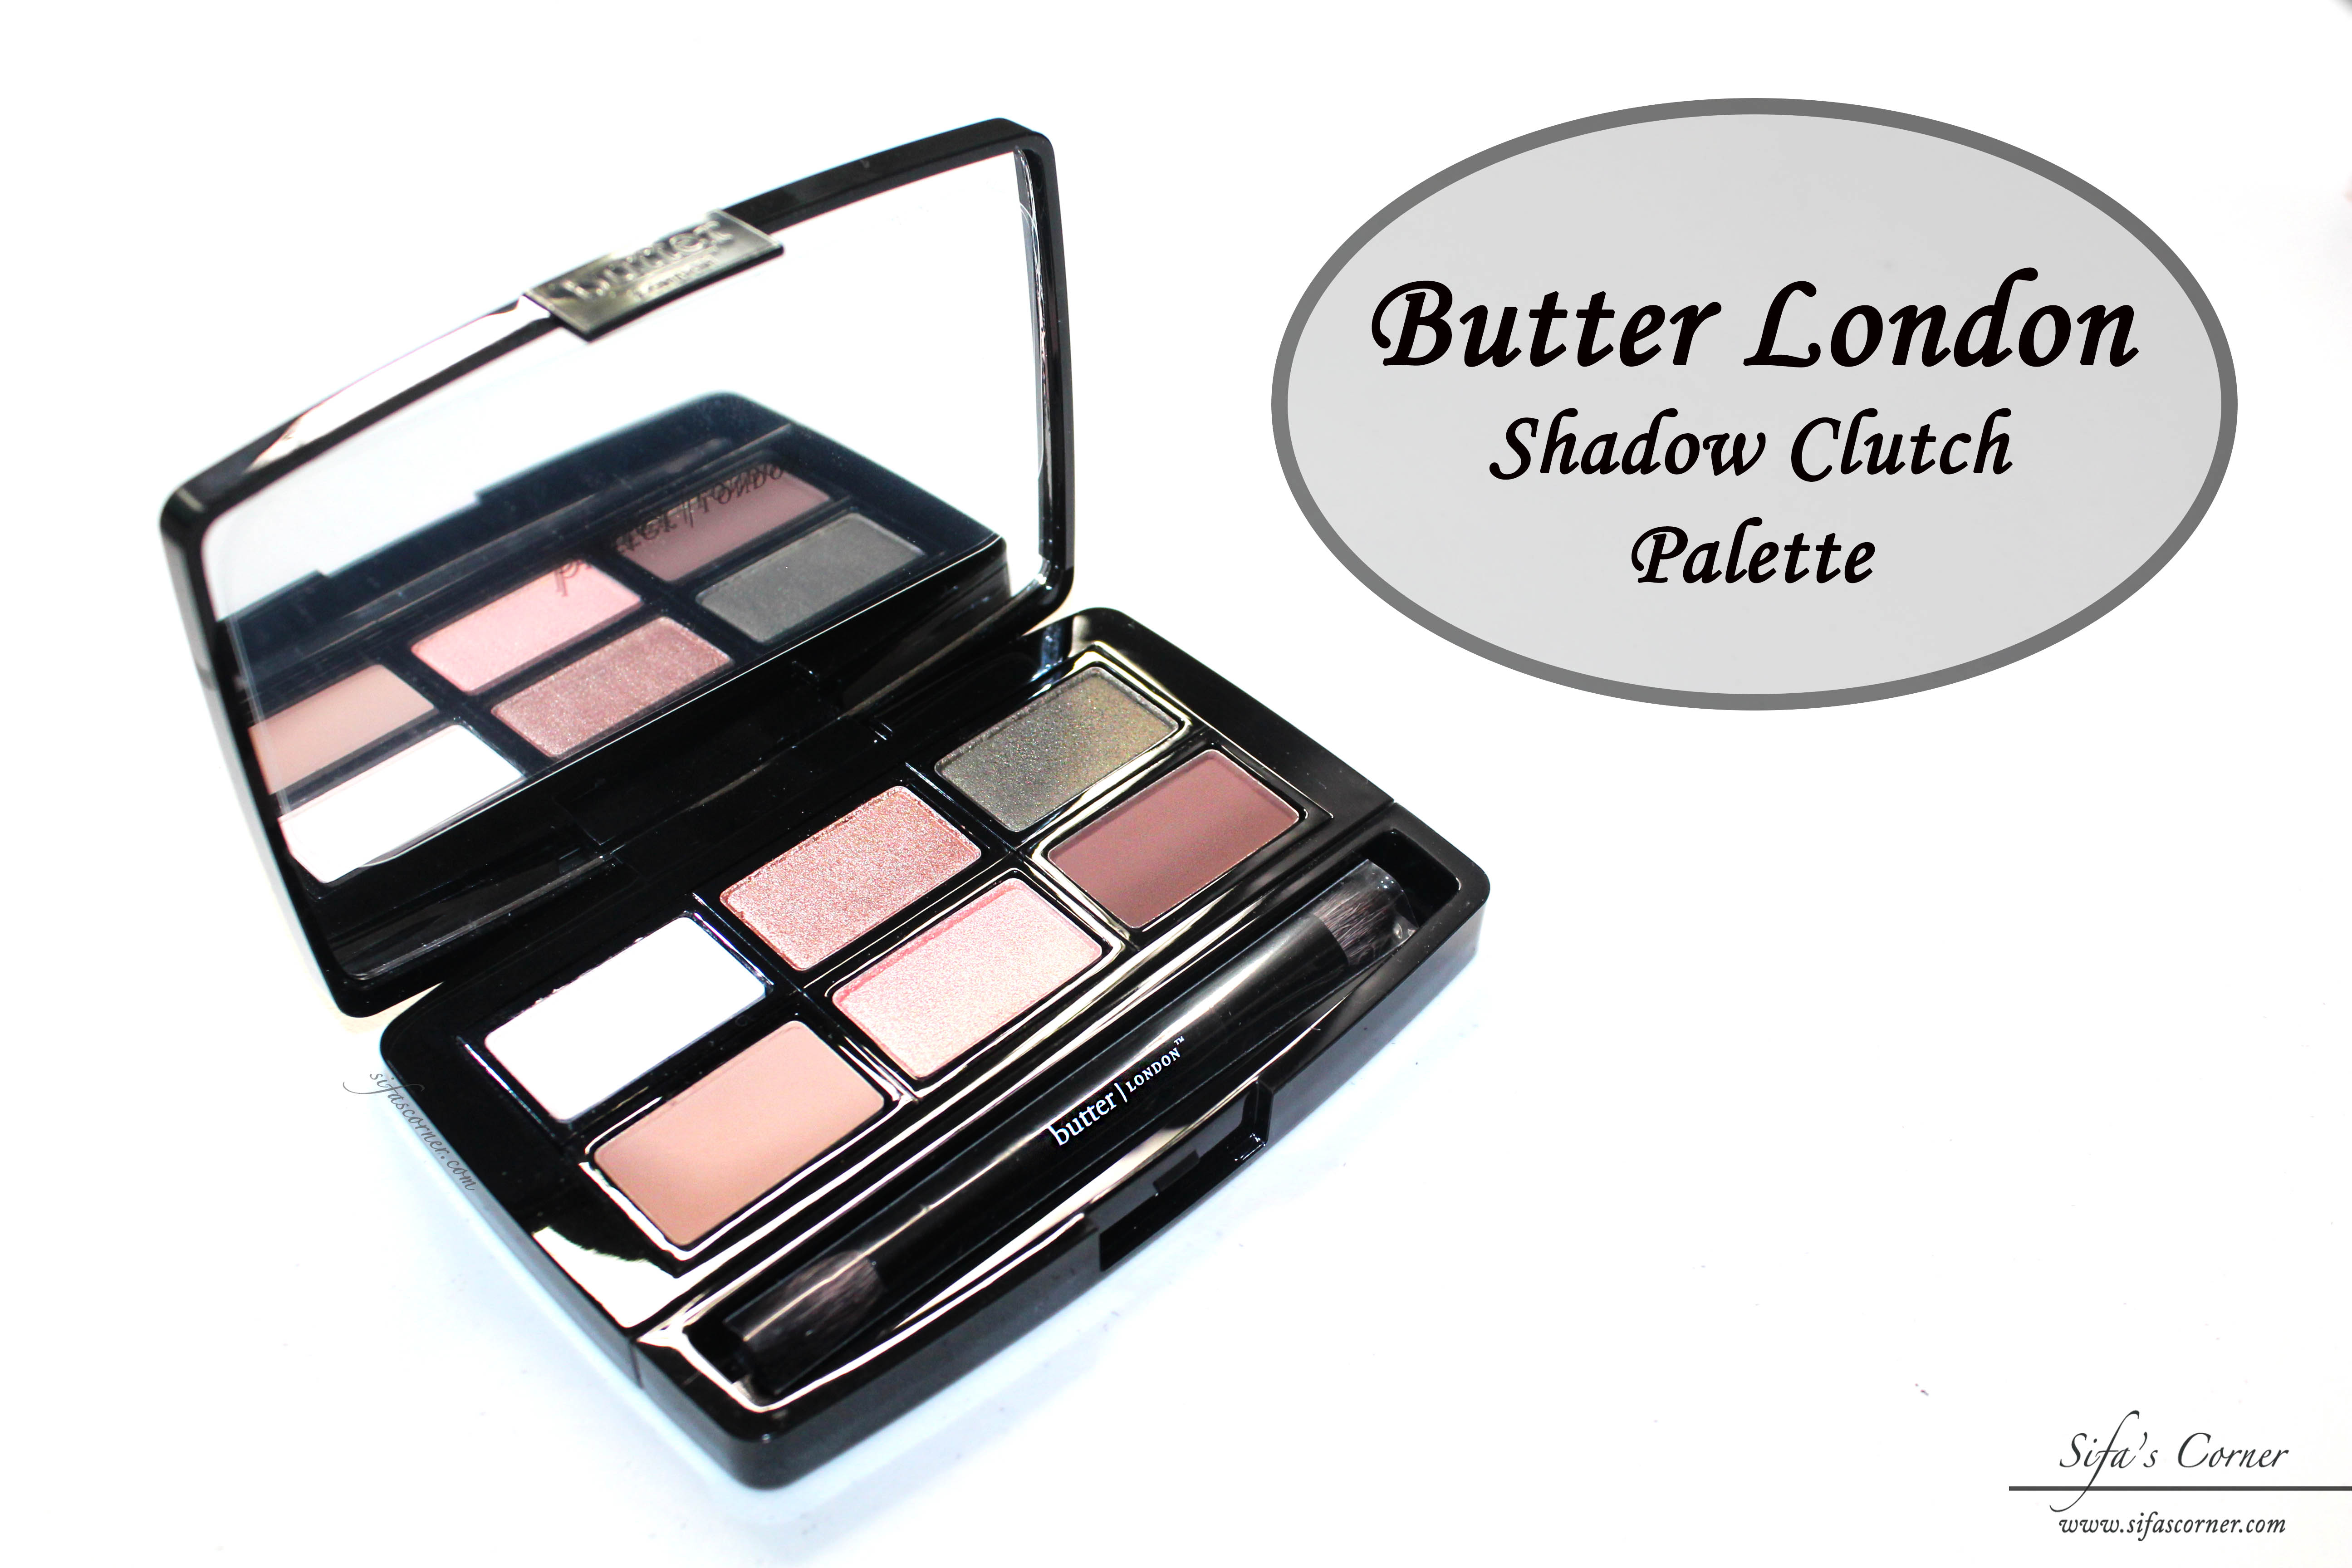 REVIEW: Butter London Shadow Clutch Palette - Sifa's Corner